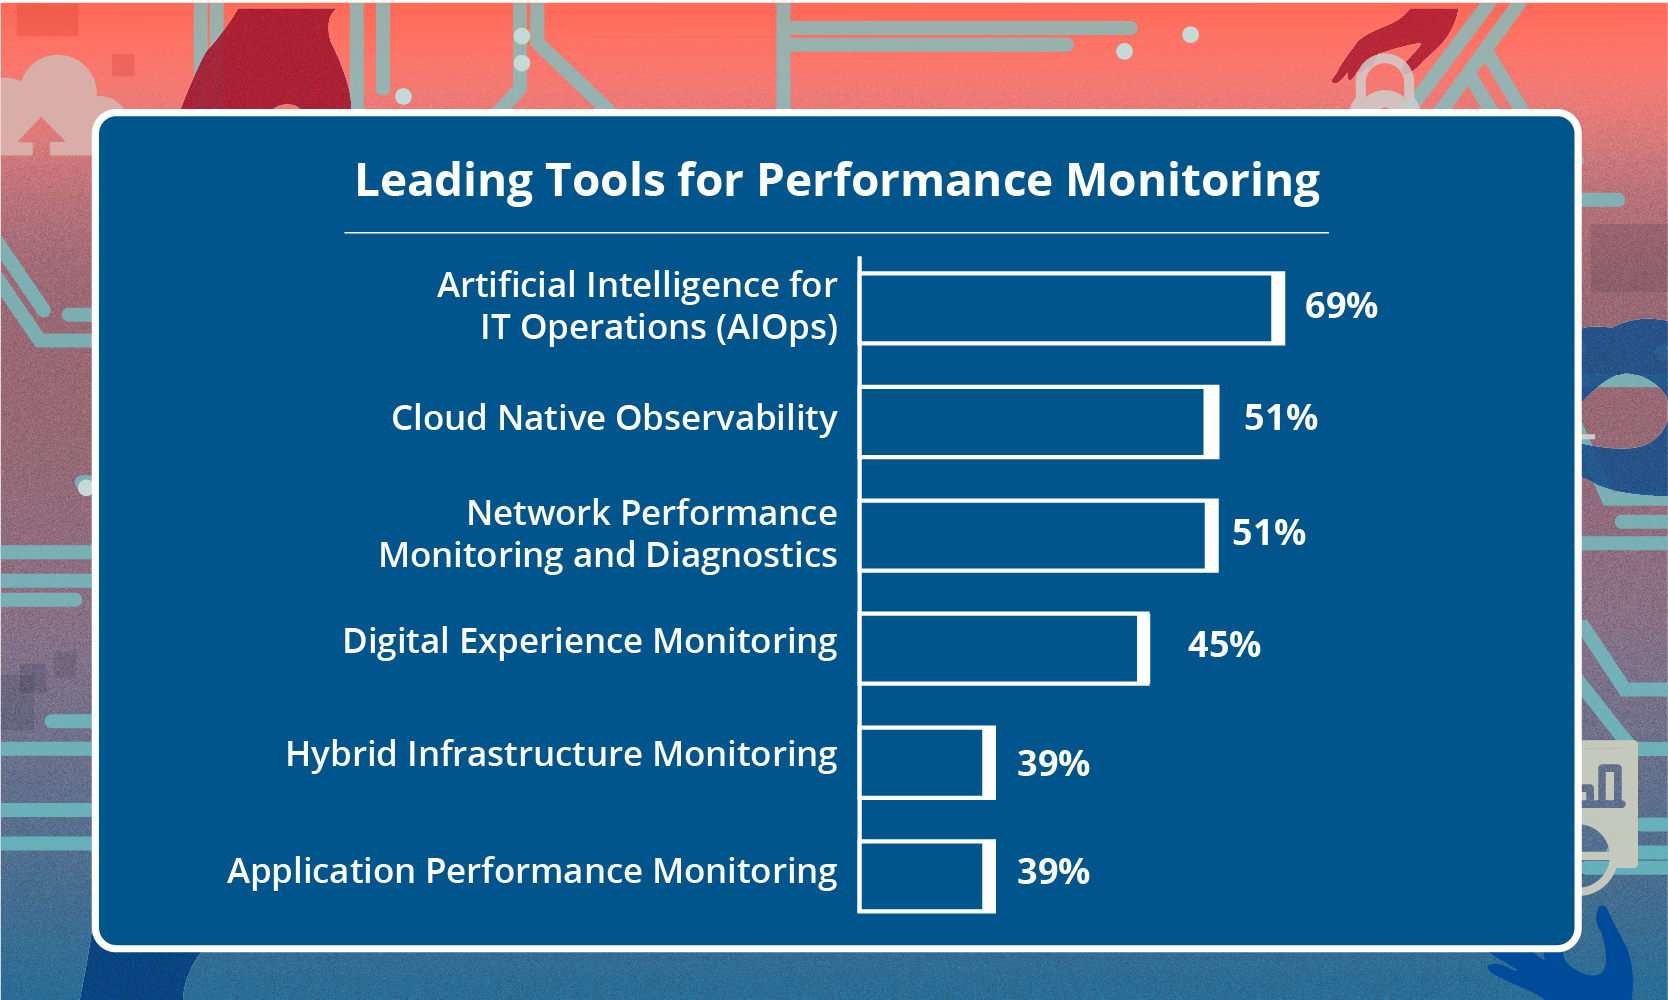 Leading Tools for Performance Monitoring